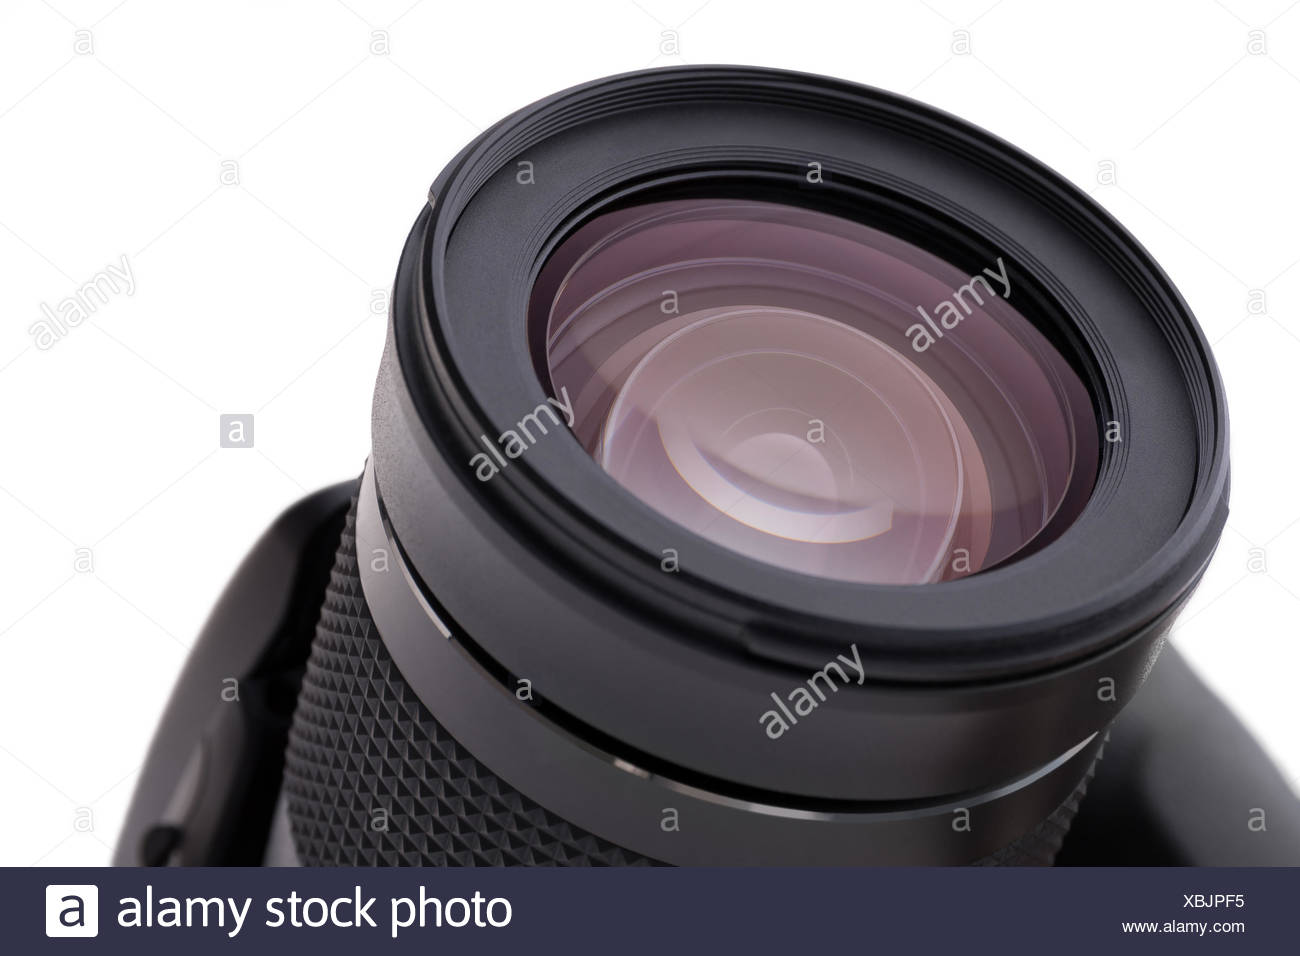 A digital reflex camera as an isolated object - Stock Image